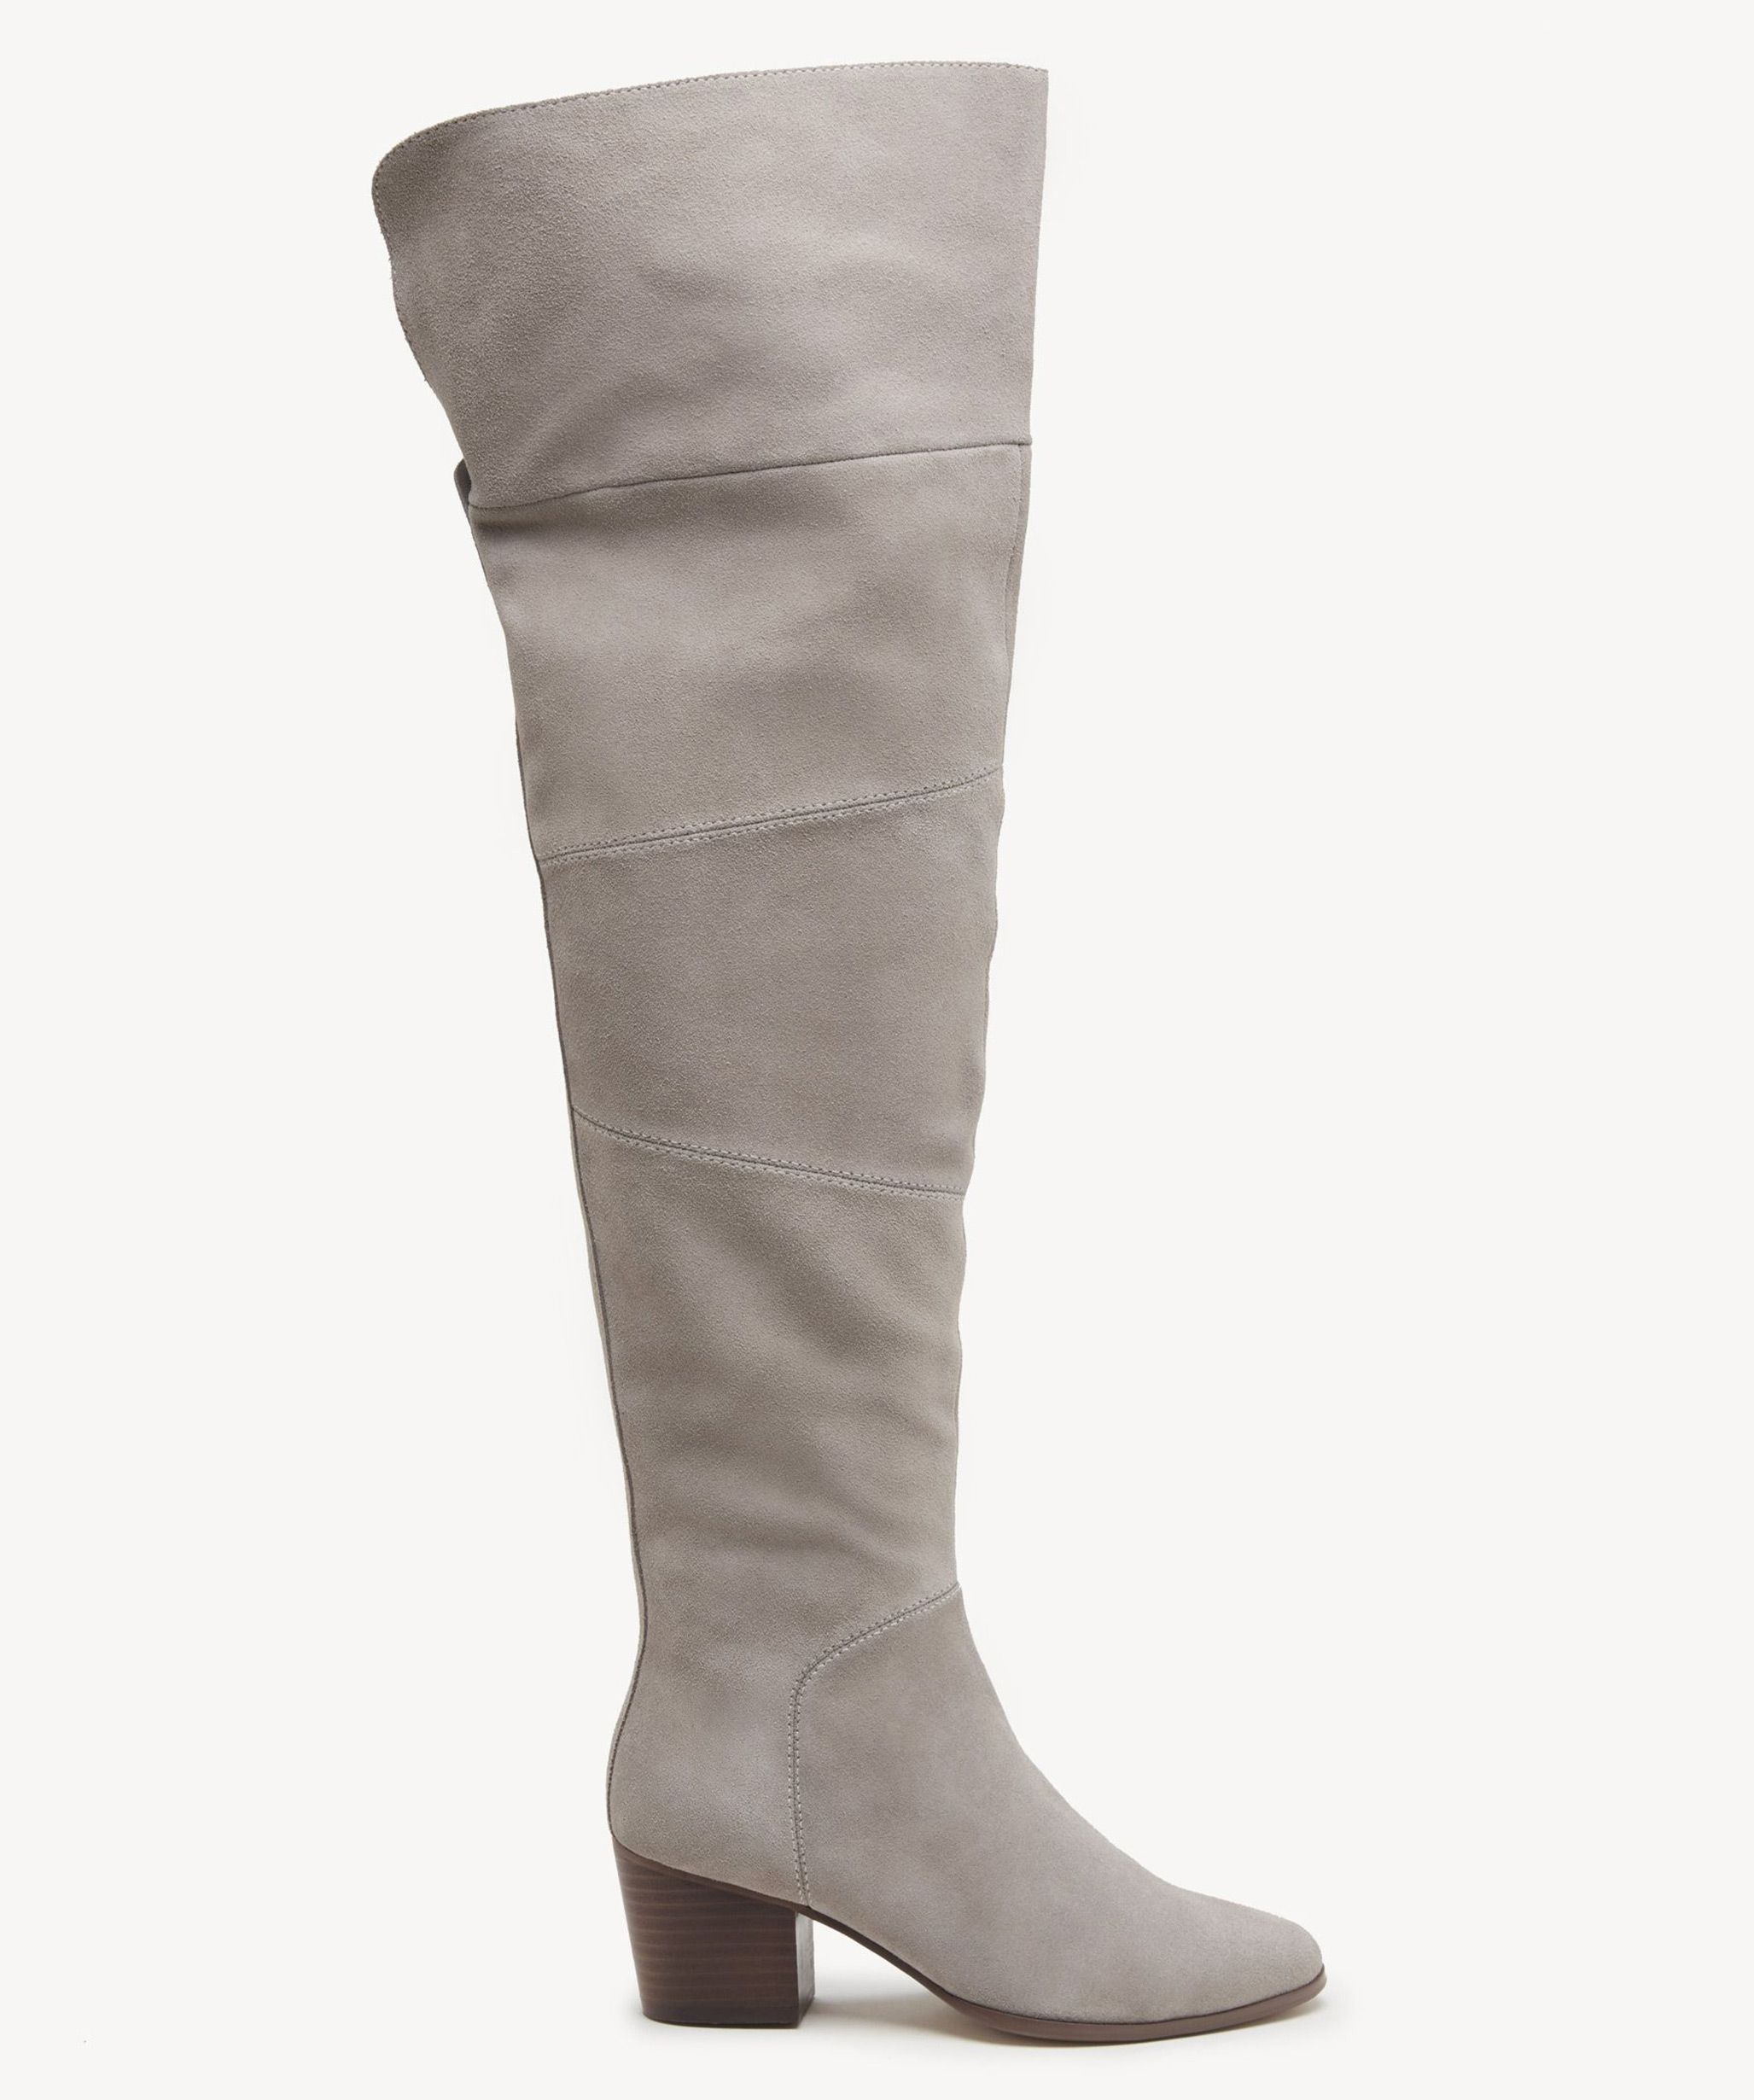 Sole Society: Melbourne OTK Boots - $150